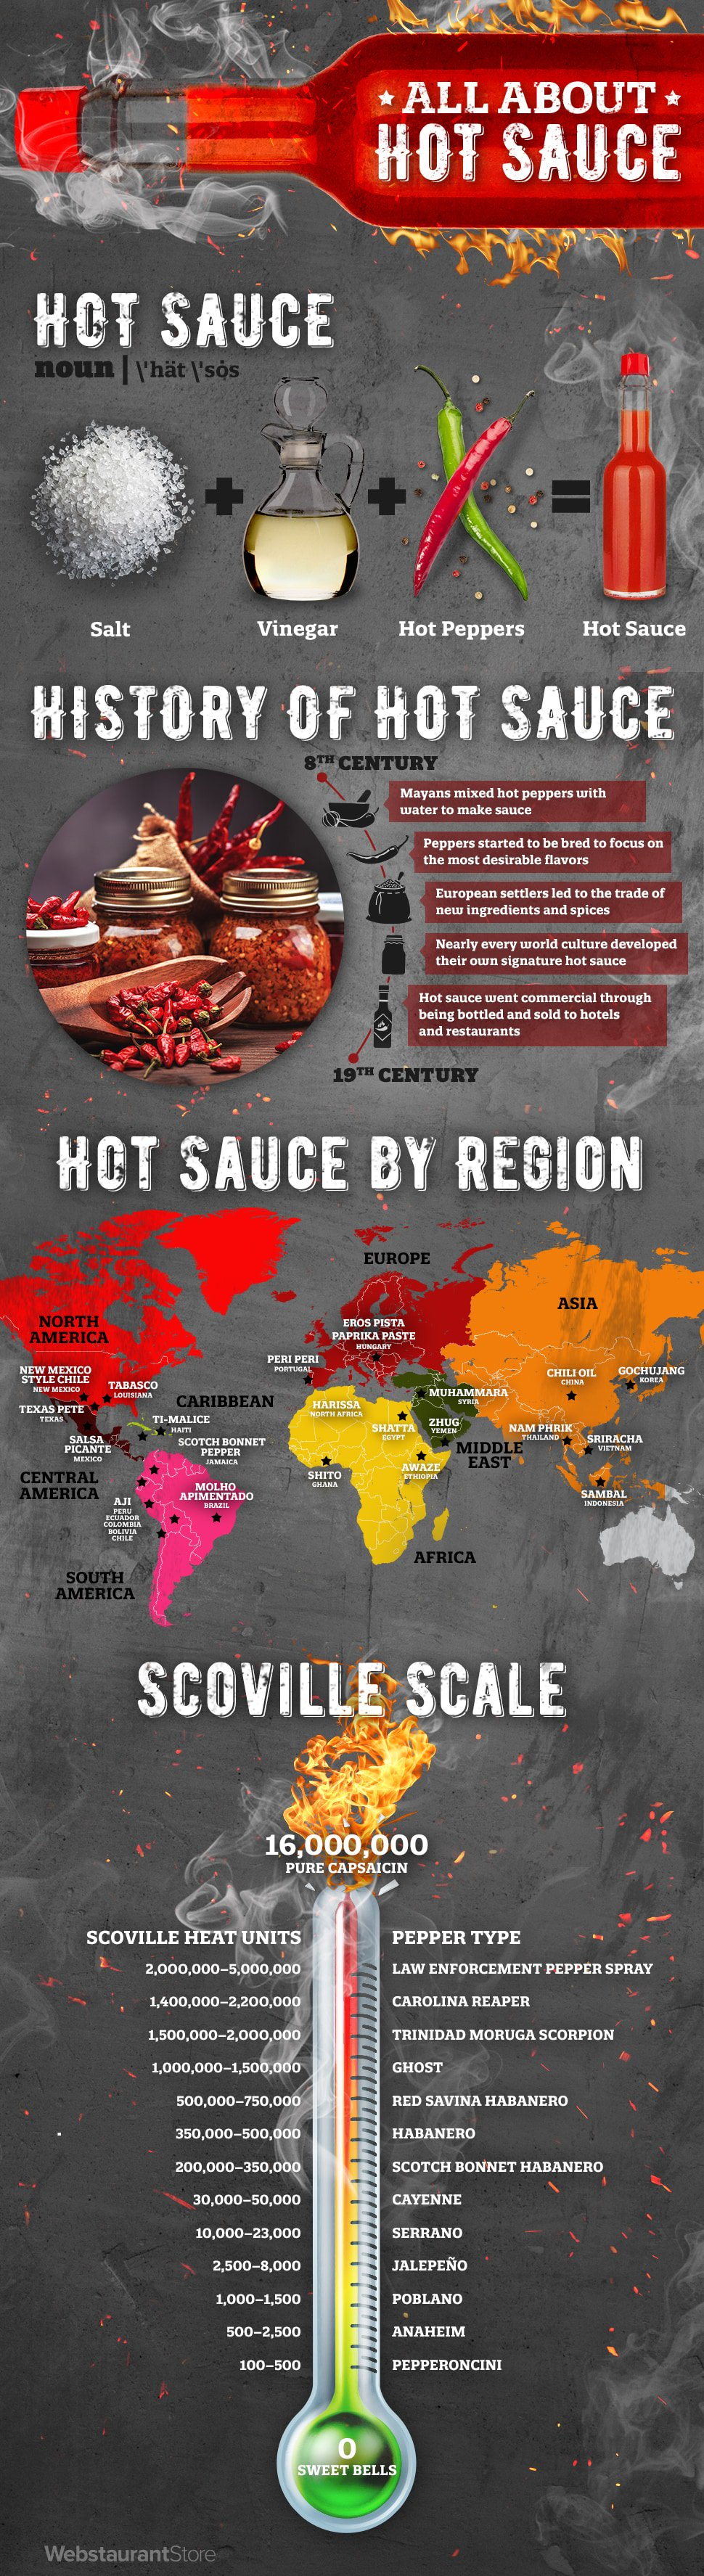 about-hot_sauce_infographic-plaza